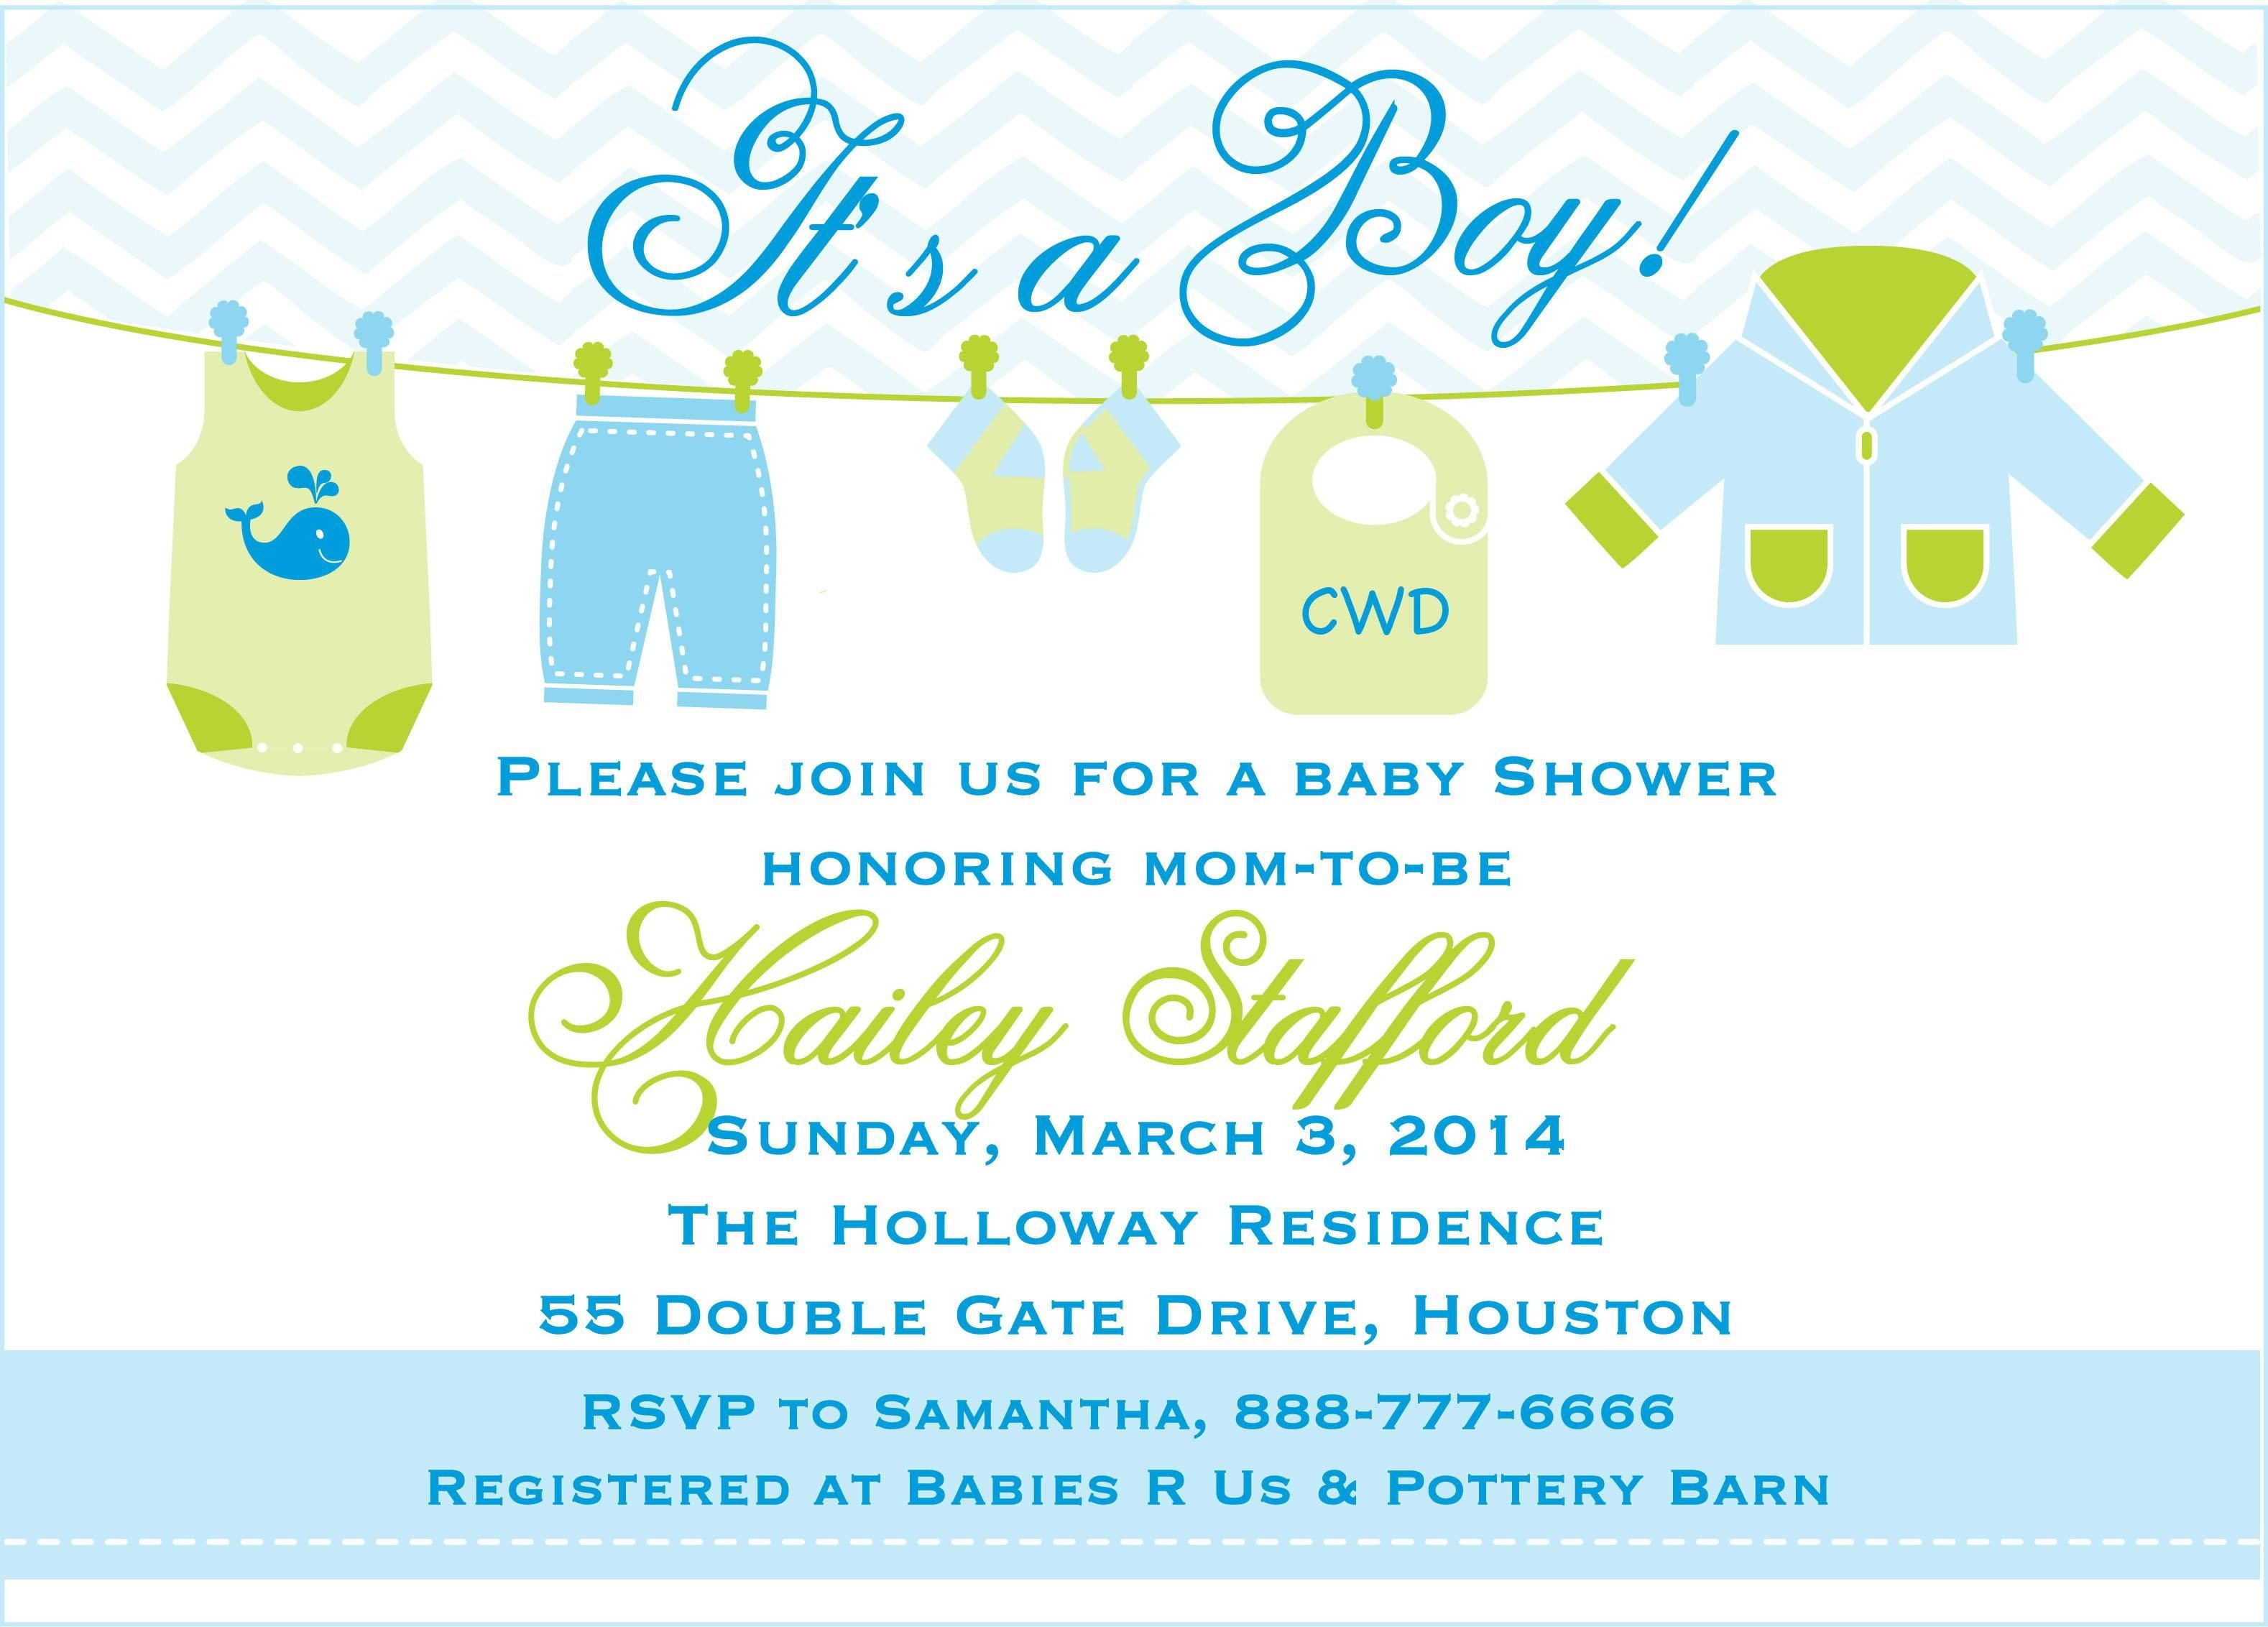 Baby Boy Shower Invitations Templates Free | Baby Shower In 2019 - Free Baby Boy Shower Invitations Printable